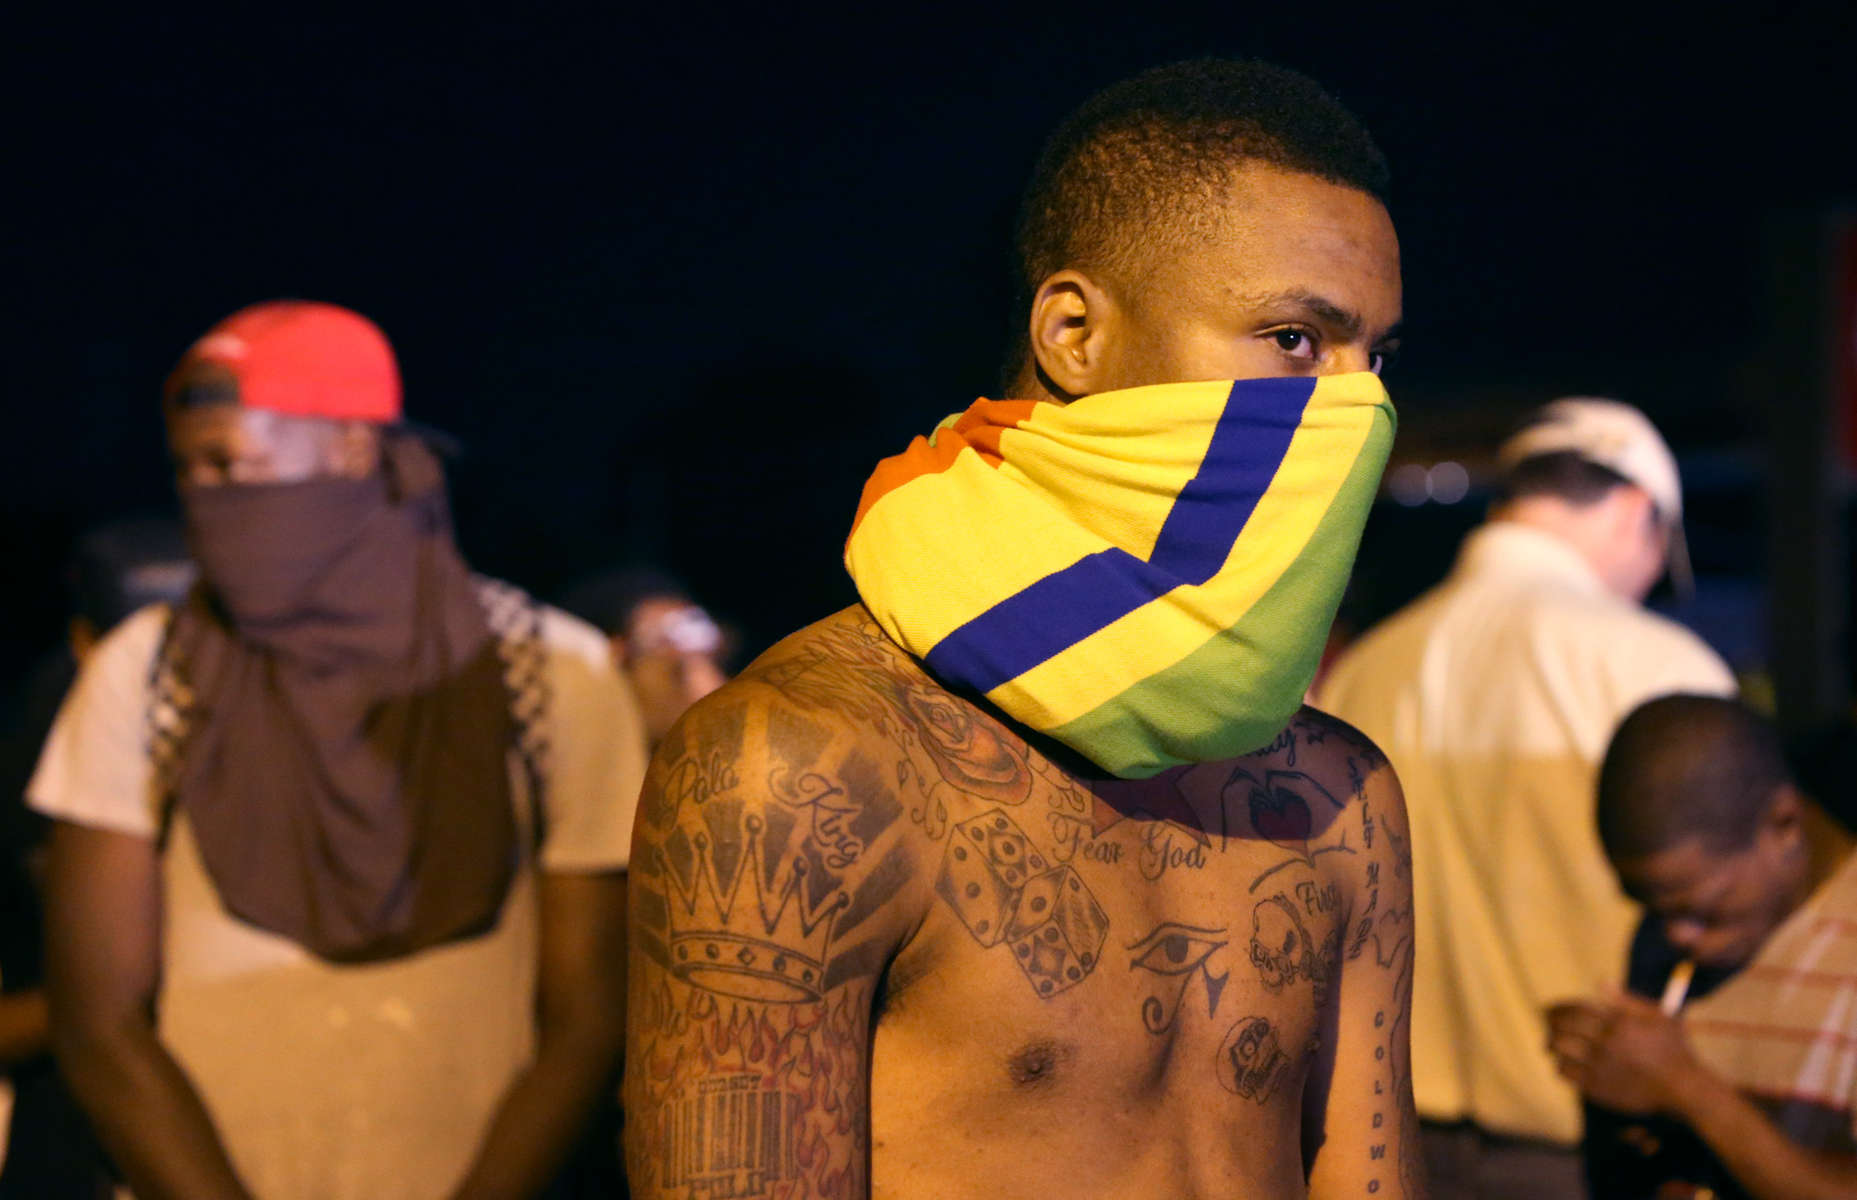 Protesters cover their face as they look toward the police blocking W. Florissant Avenue on Tuesday, Aug. 12, 2014 near the QuikTrip that was burned down a few days earlier in Ferguson.